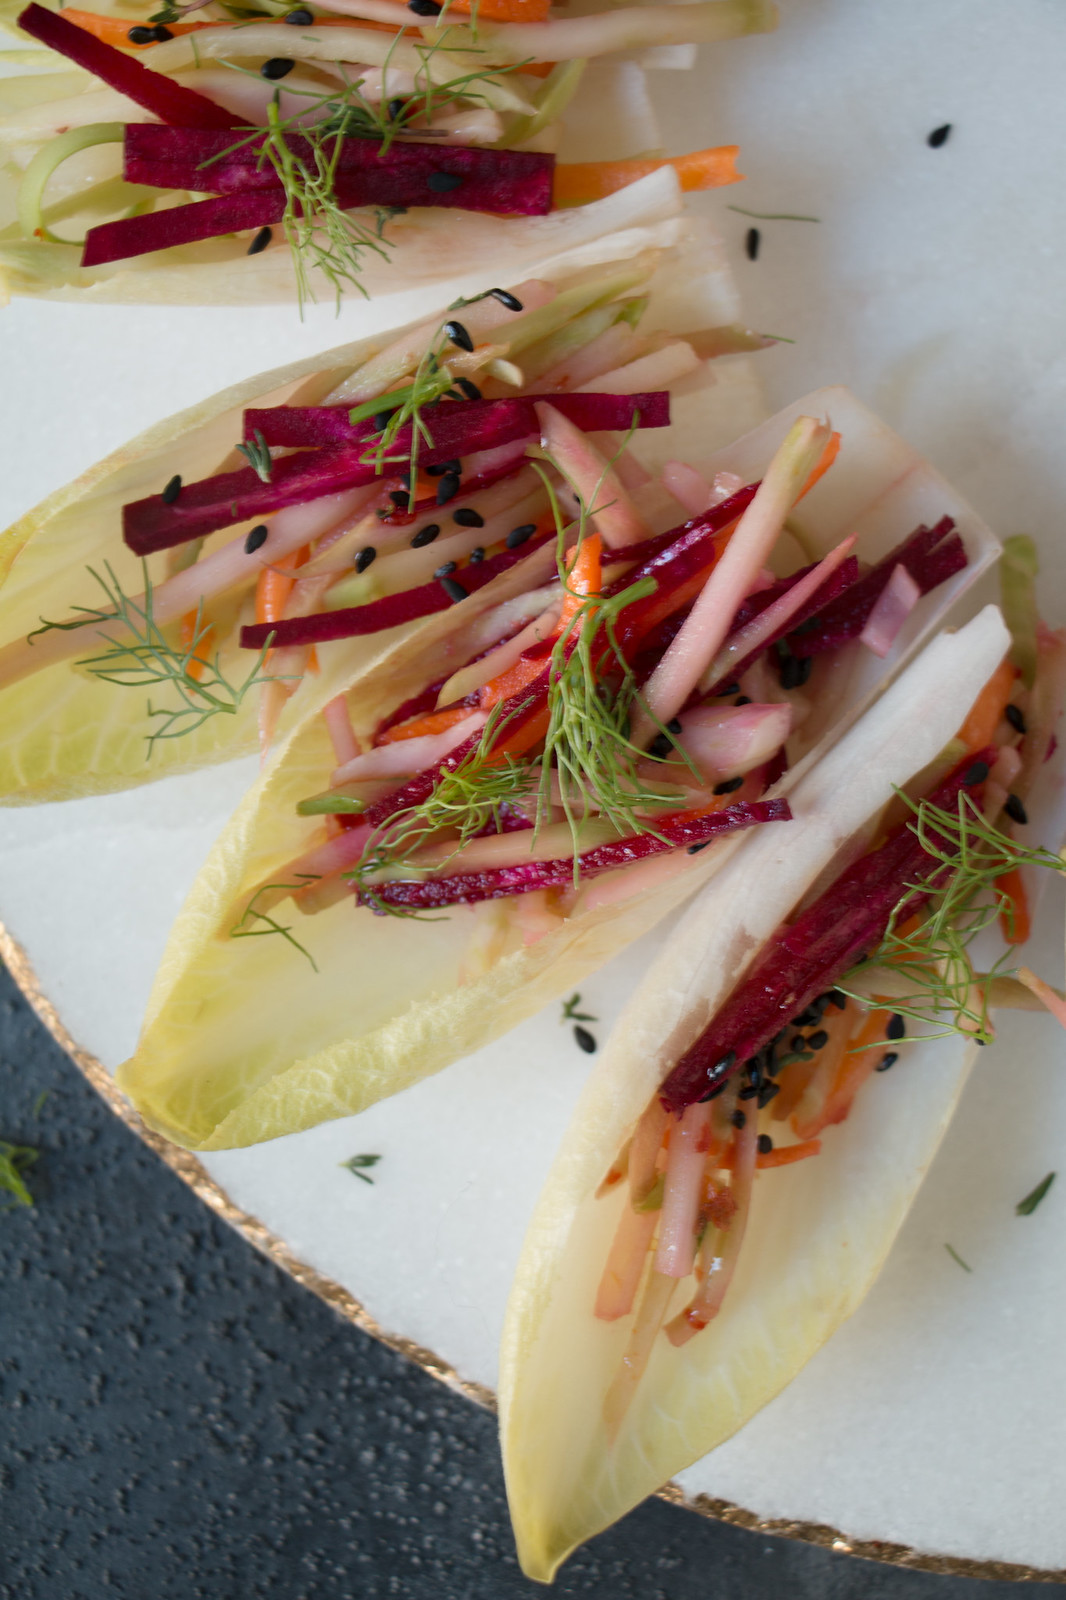 Endive Boats with Beet-Carrot-Fennel-Pear in Asian dressing